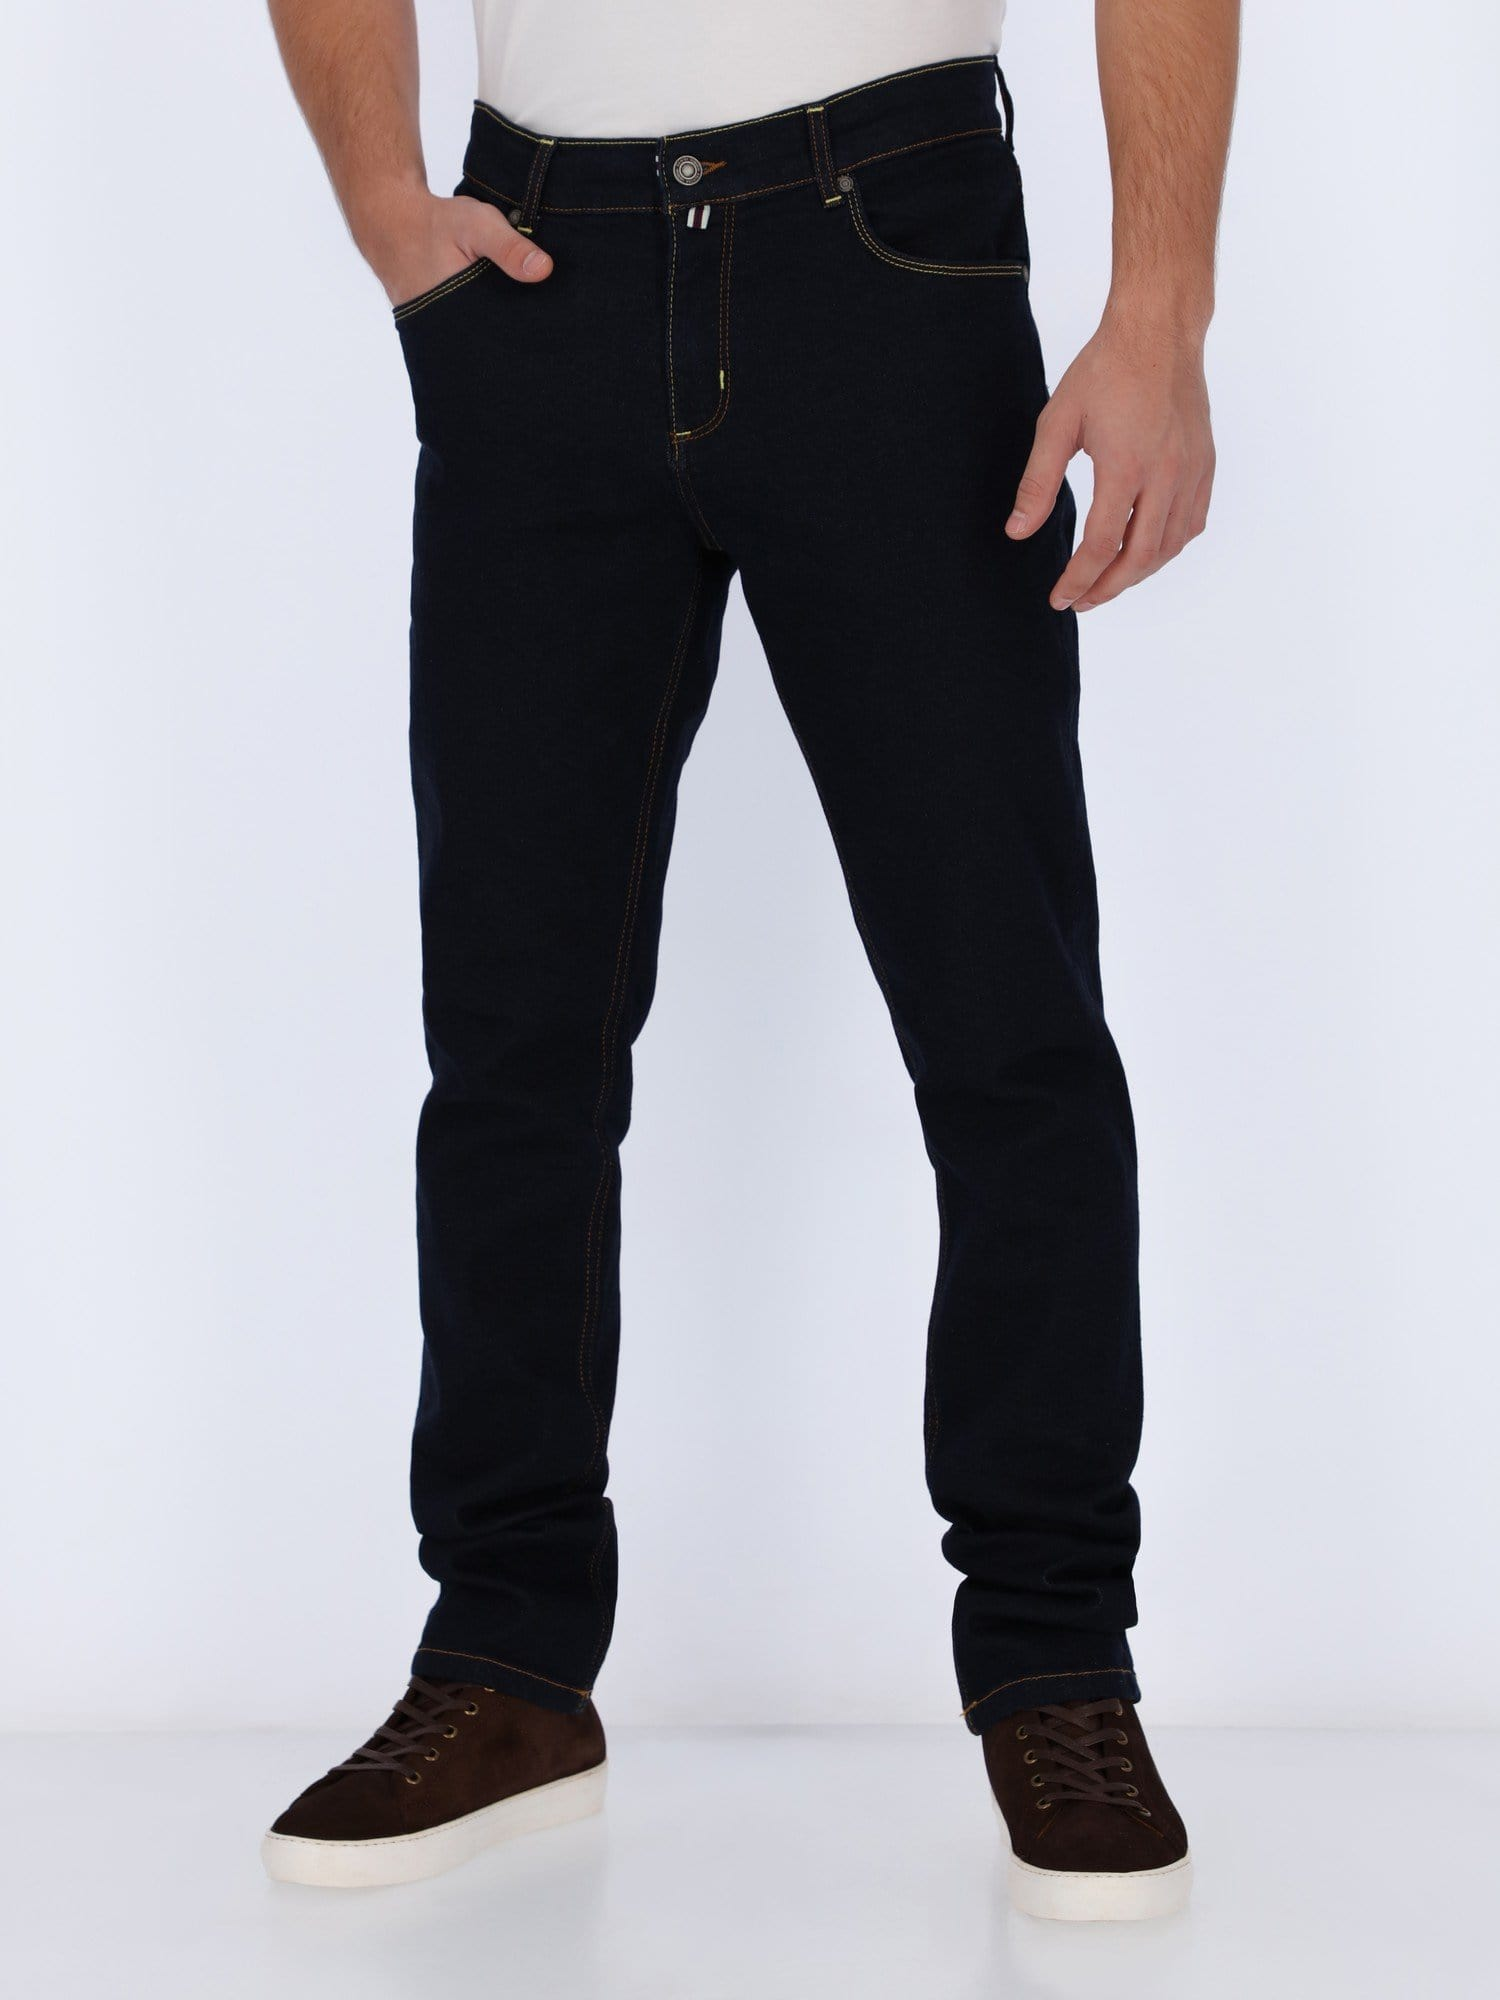 Daniel Hechter Pants & Shorts NAVY BLUE / 30 Jeans Pants with Stitched Back Pockets